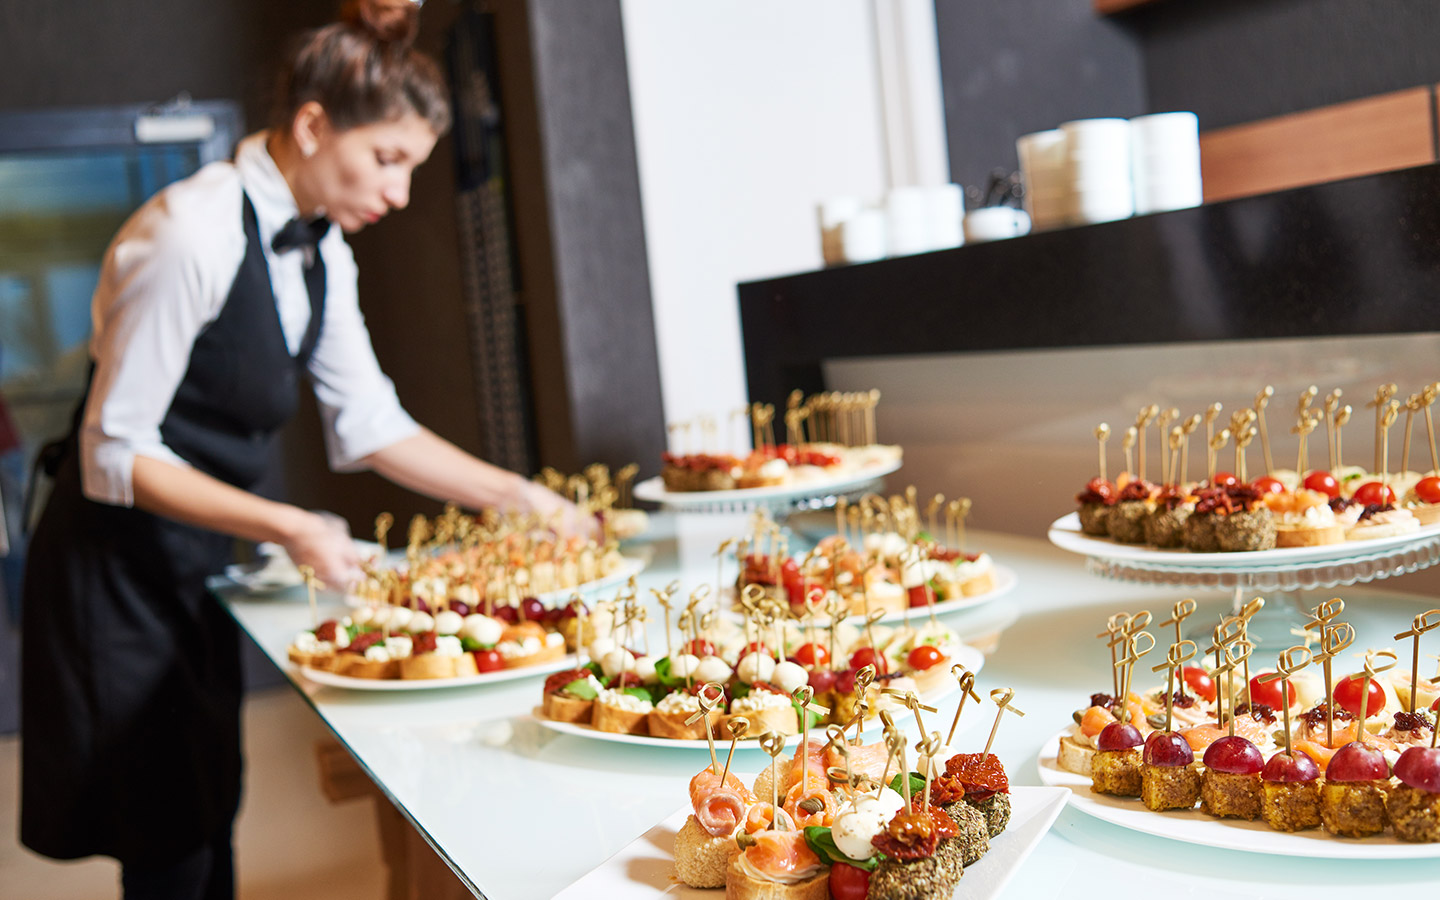 Questions to ask before hiring corporate catering services